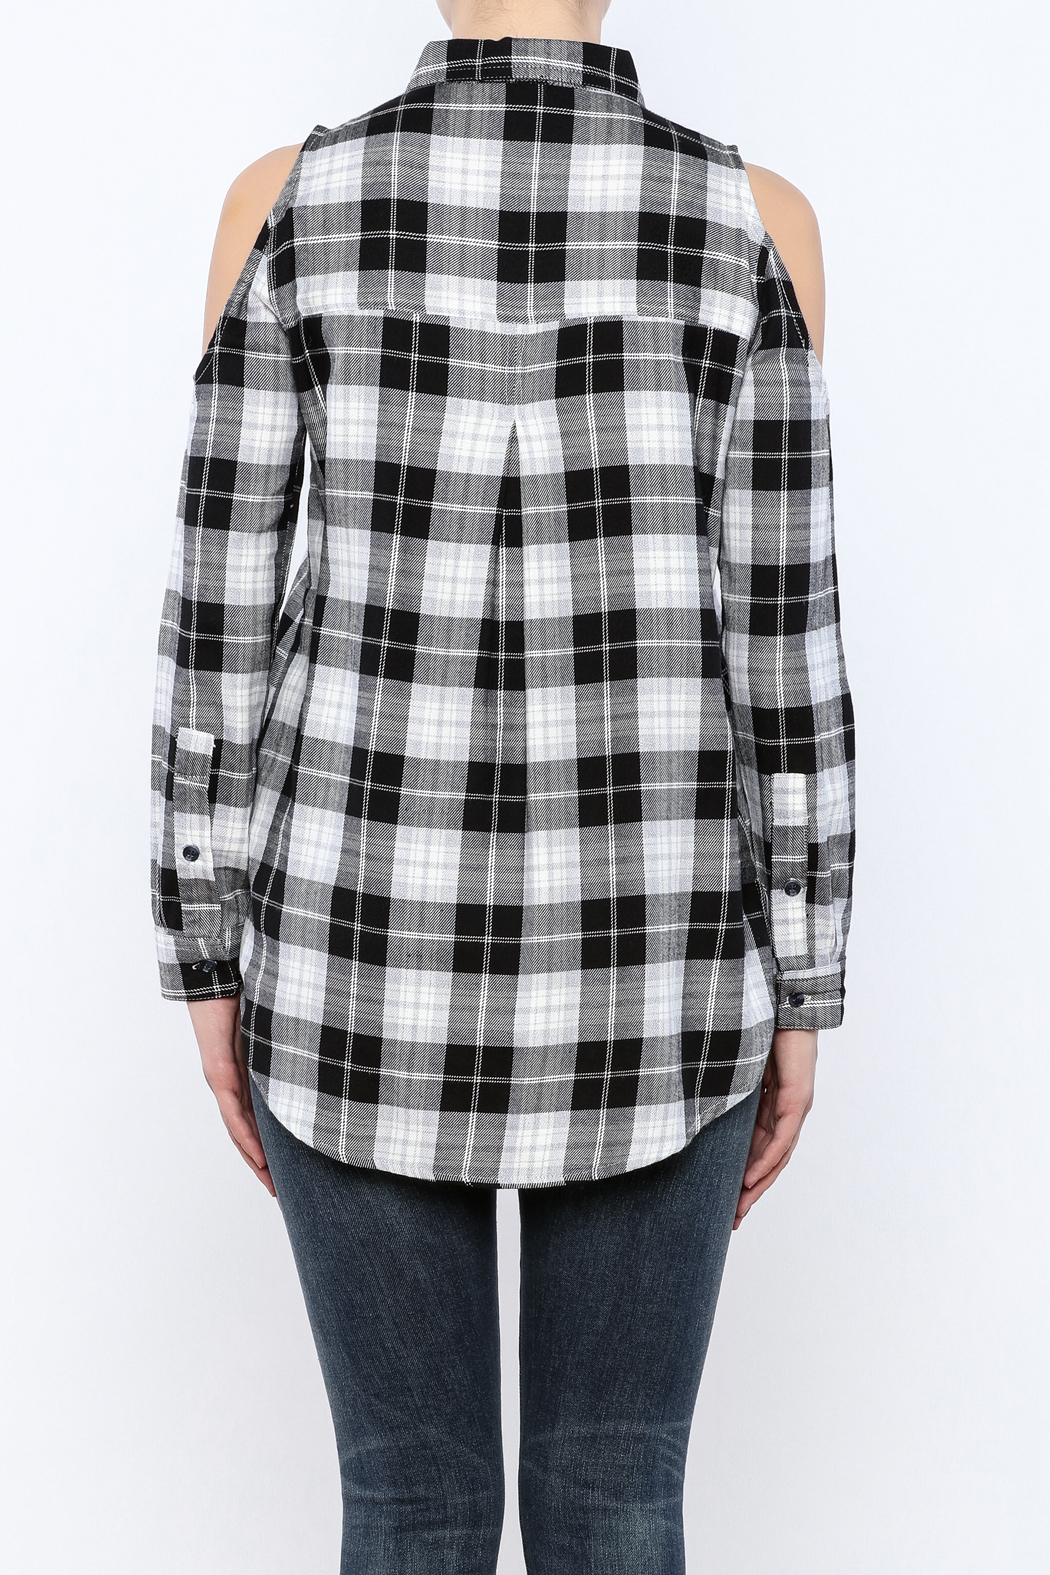 Velvet Heart Finely Cold Shoulder Plaid Top - Back Cropped Image